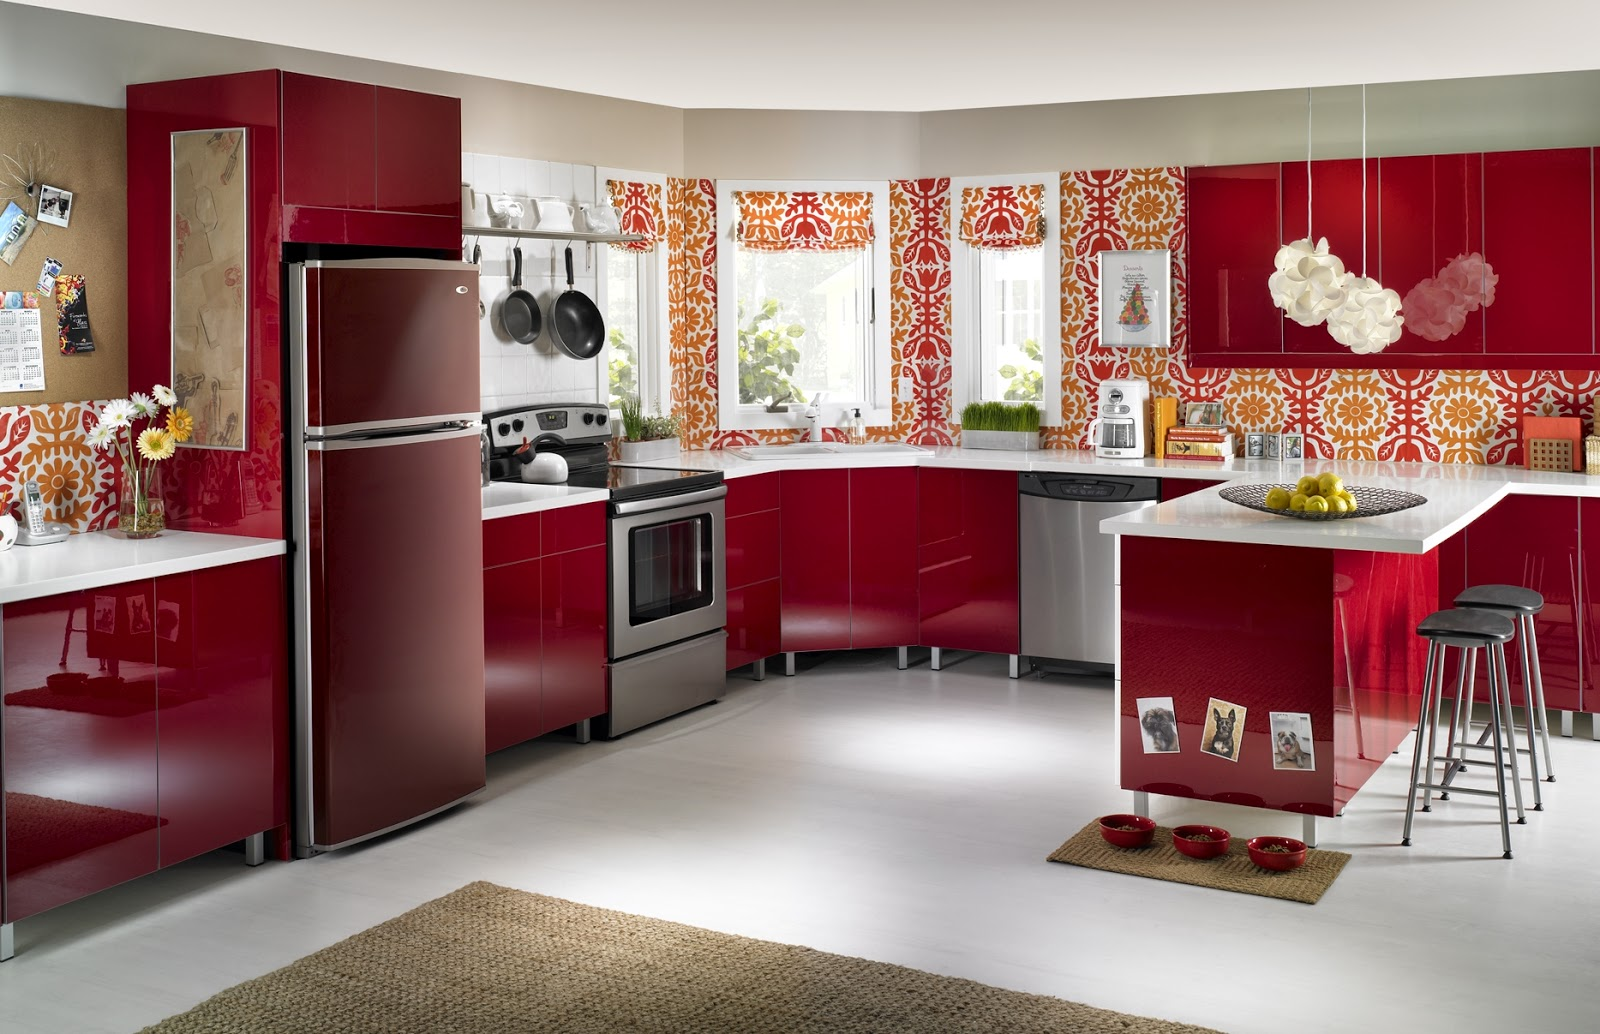 Uncategorized What Are The Best Kitchen Appliances To Buy houston kitchen appliances and custom cabinetry in texas march 2015 clean up thoroughly you thought remodeling was expensive well its time once again see the idea remai